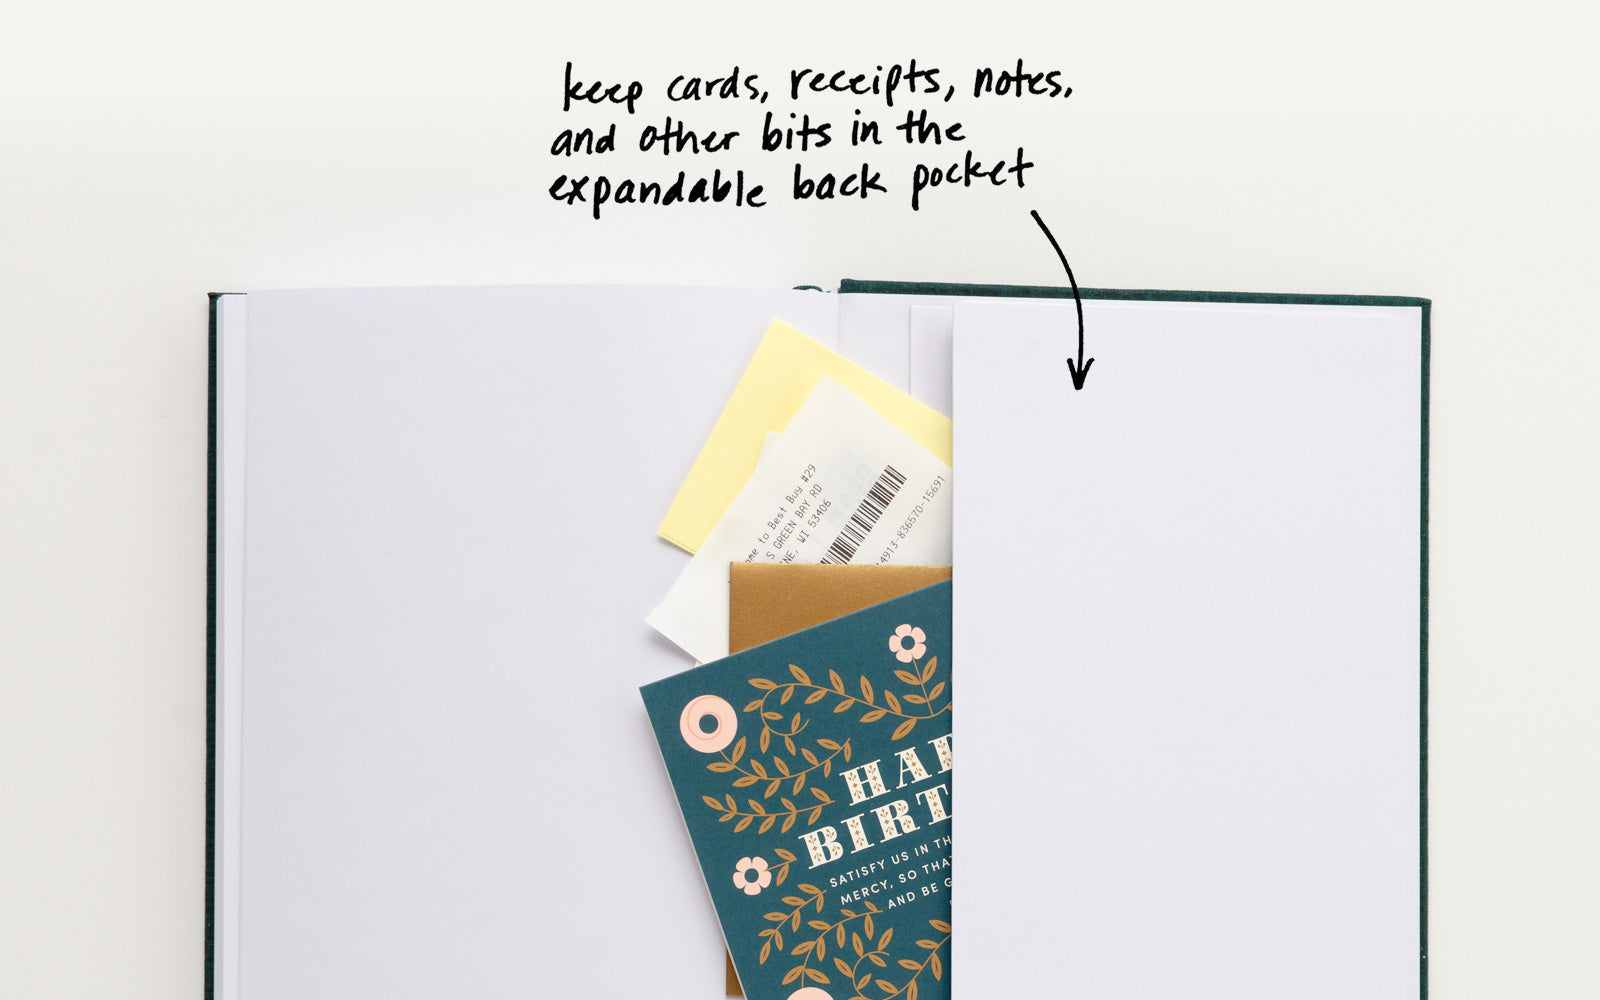 Keep cards, receipts, notes, and other bits in the expandable back pocket